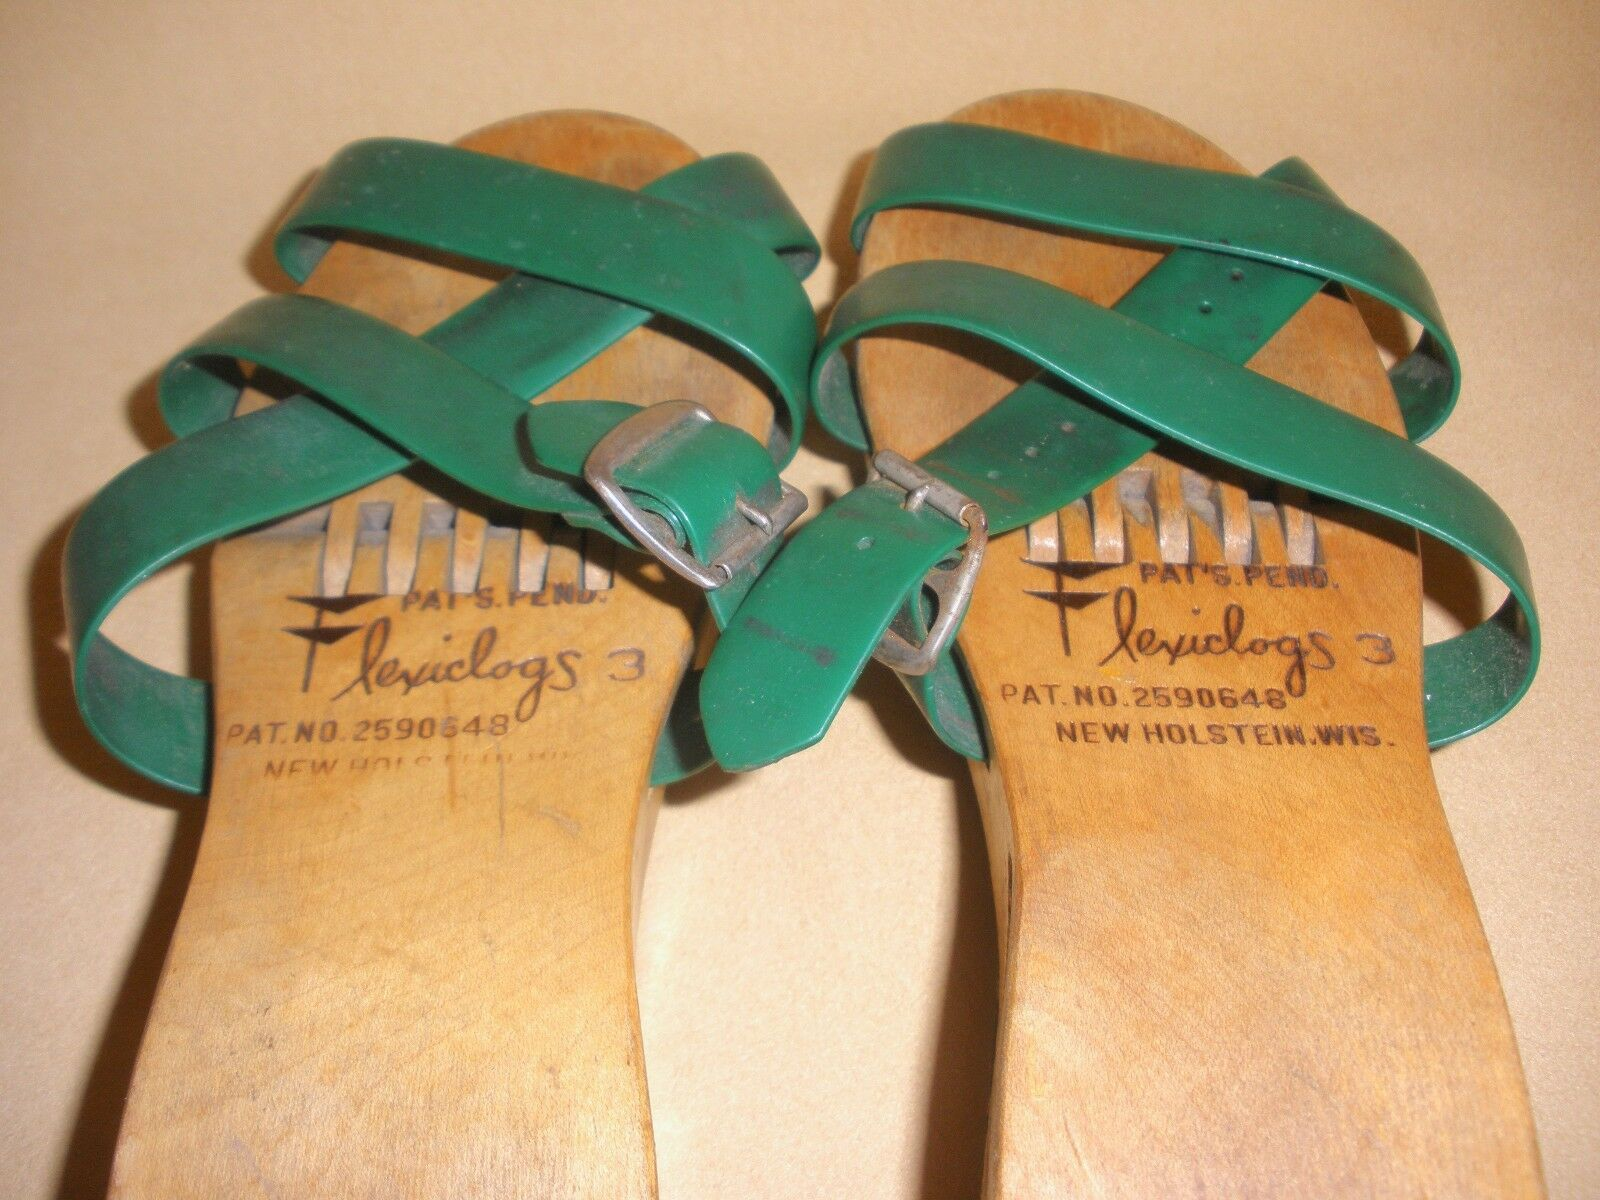 1950's Ladies Flexiclogs in Green Patent 2590648 … - image 5